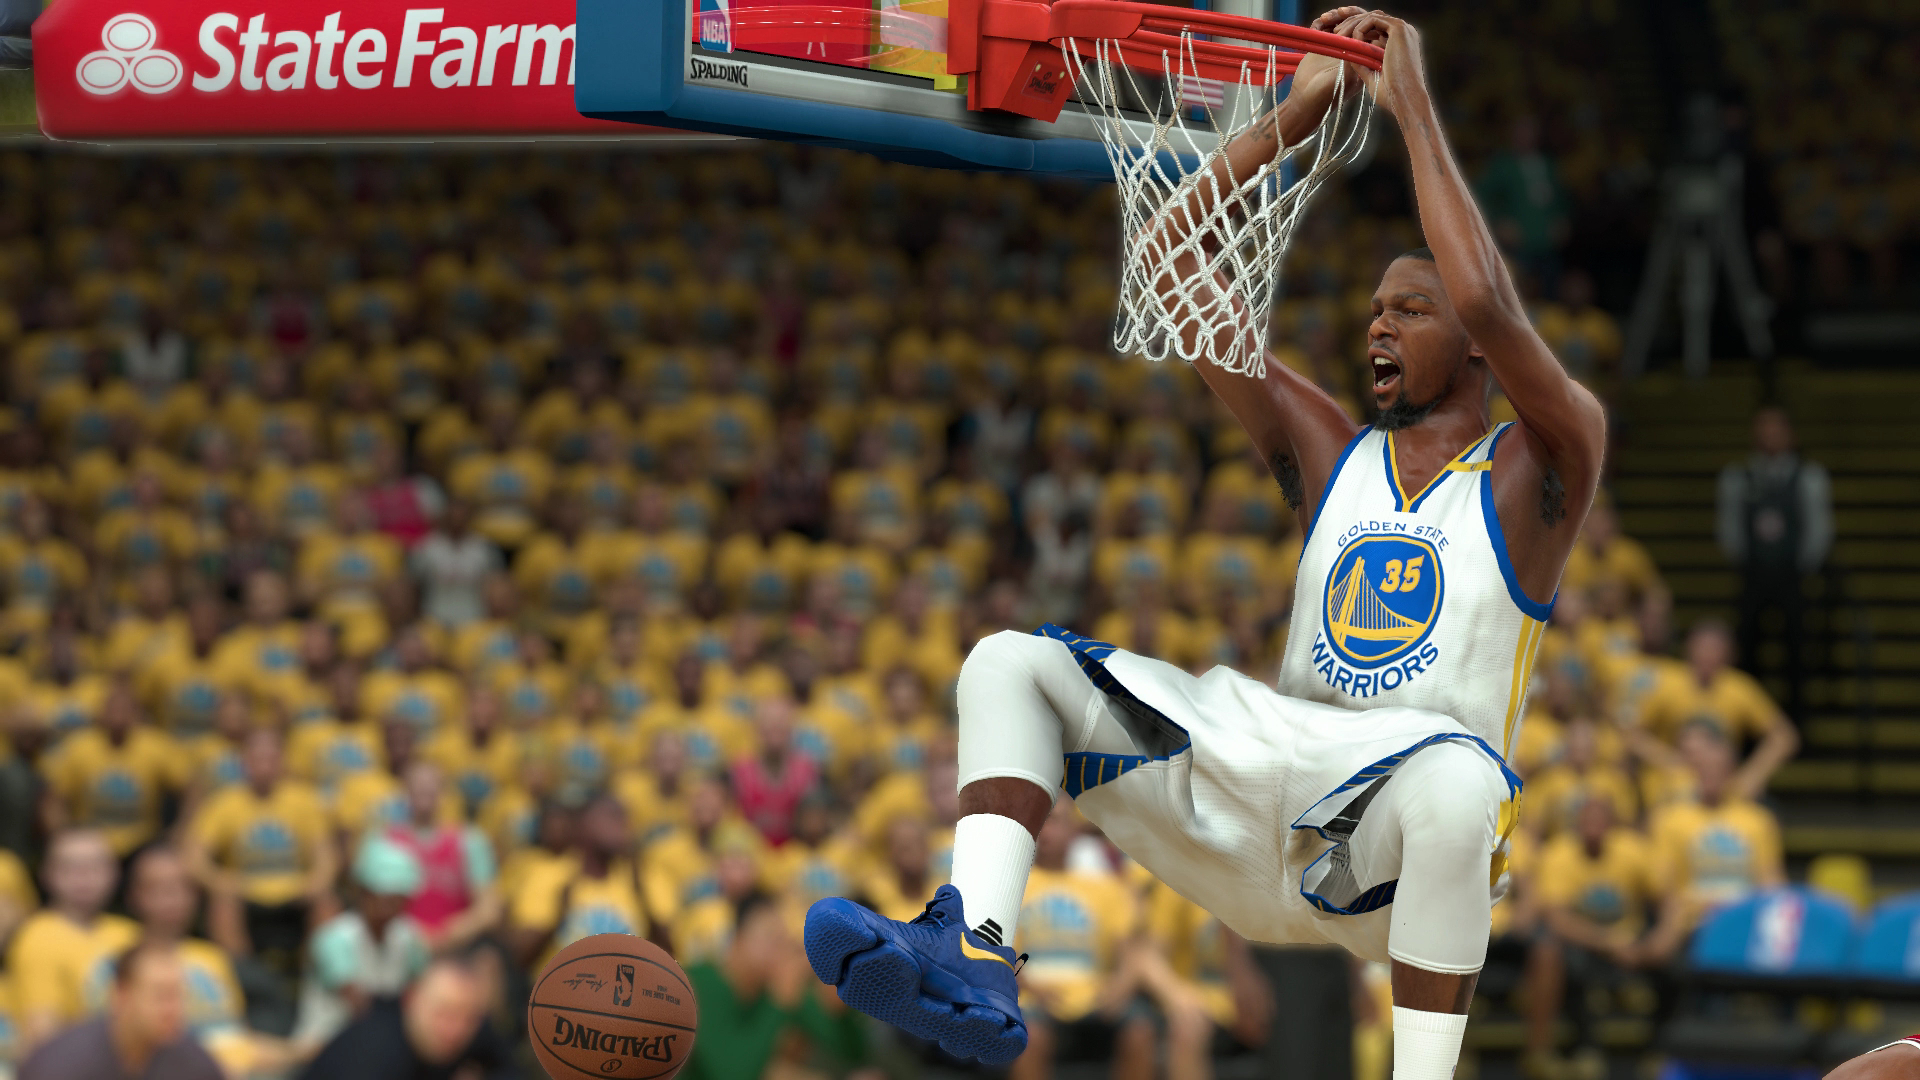 1995-96 Bulls or 2016-17 Warriors? 'NBA 2K' declares the best team of all time | NBA | Sporting News